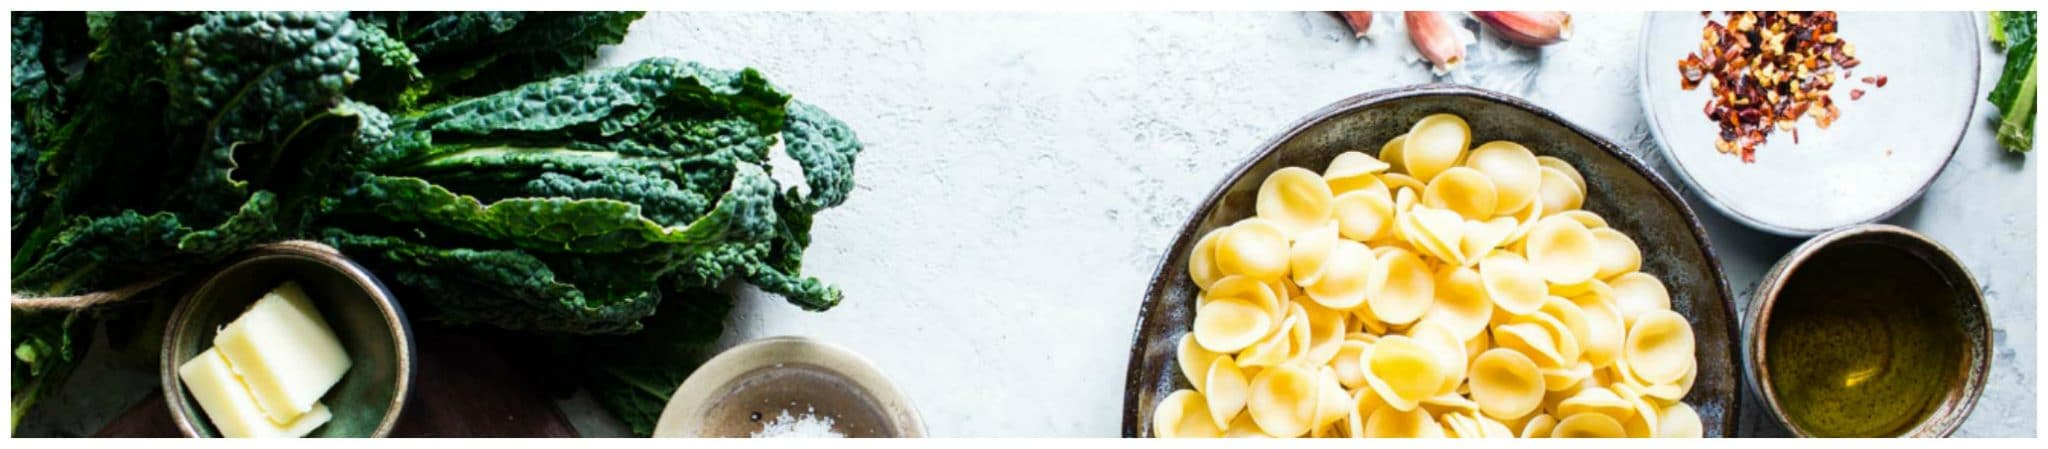 Ingredients for Pasta and Kale Recipe